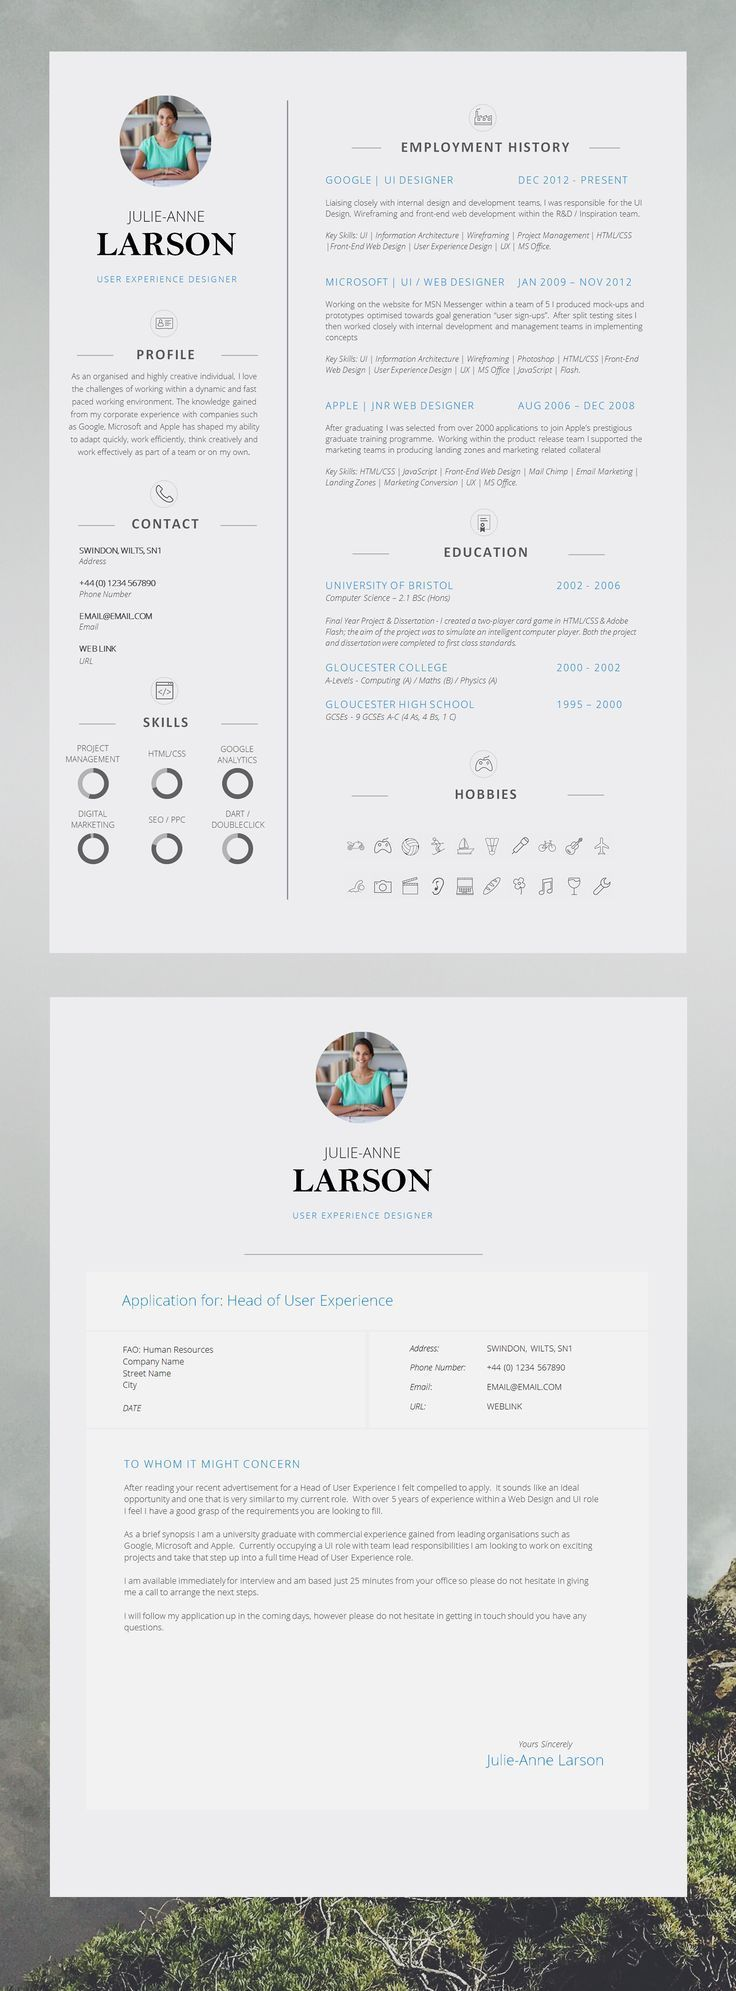 How To Make A Cover Letter For A Resume Business Infographic  Best Cover Letter Template Ideas Pinterest .